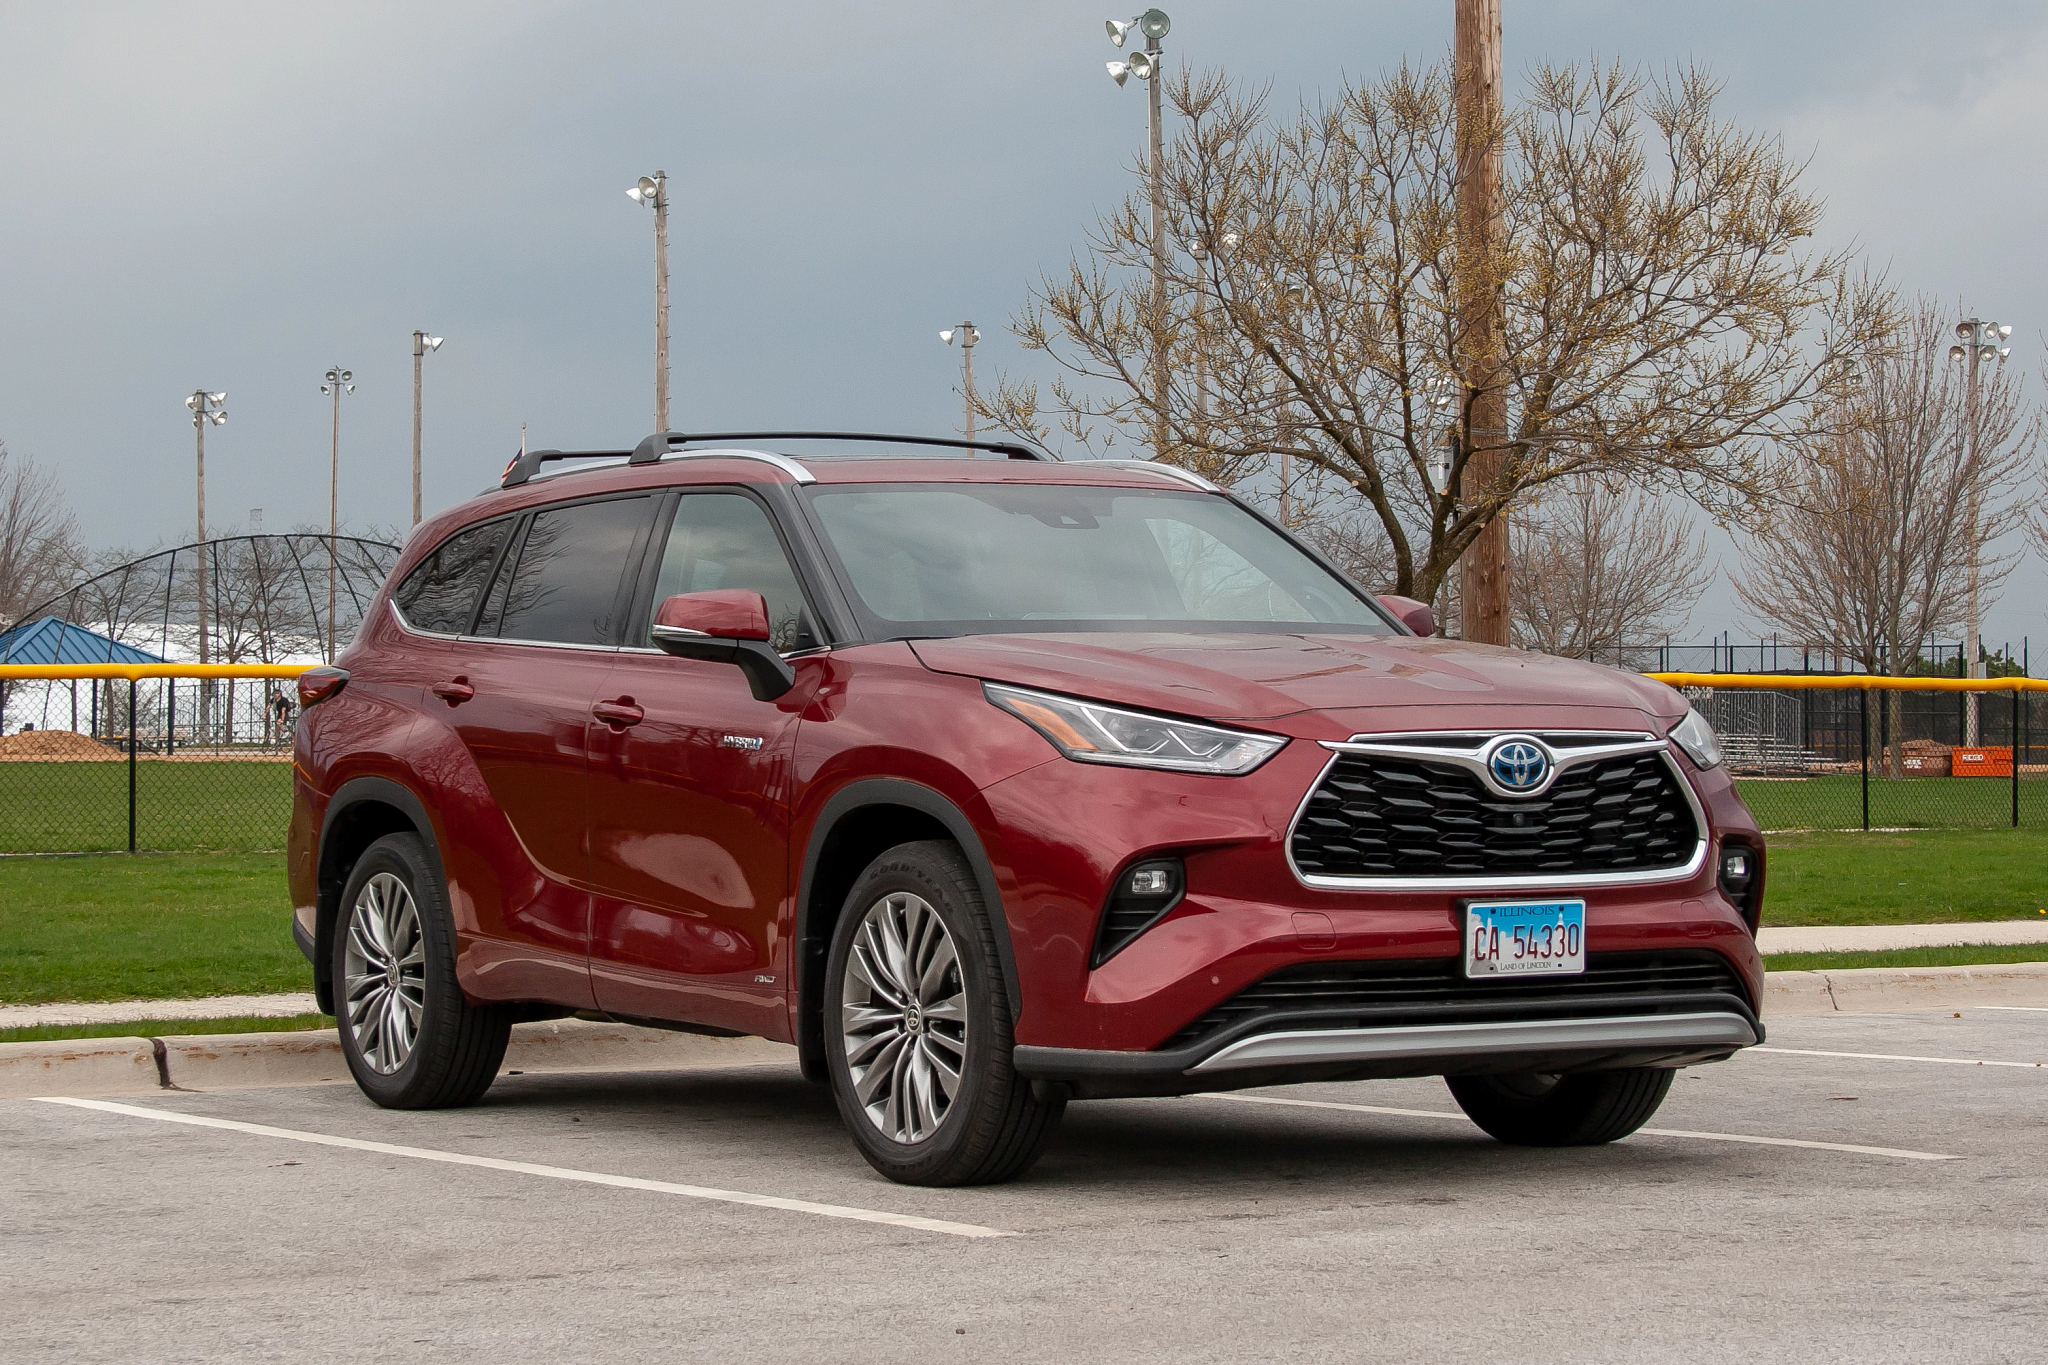 2020 Toyota Highlander Hybrid: What's the Payback Time?